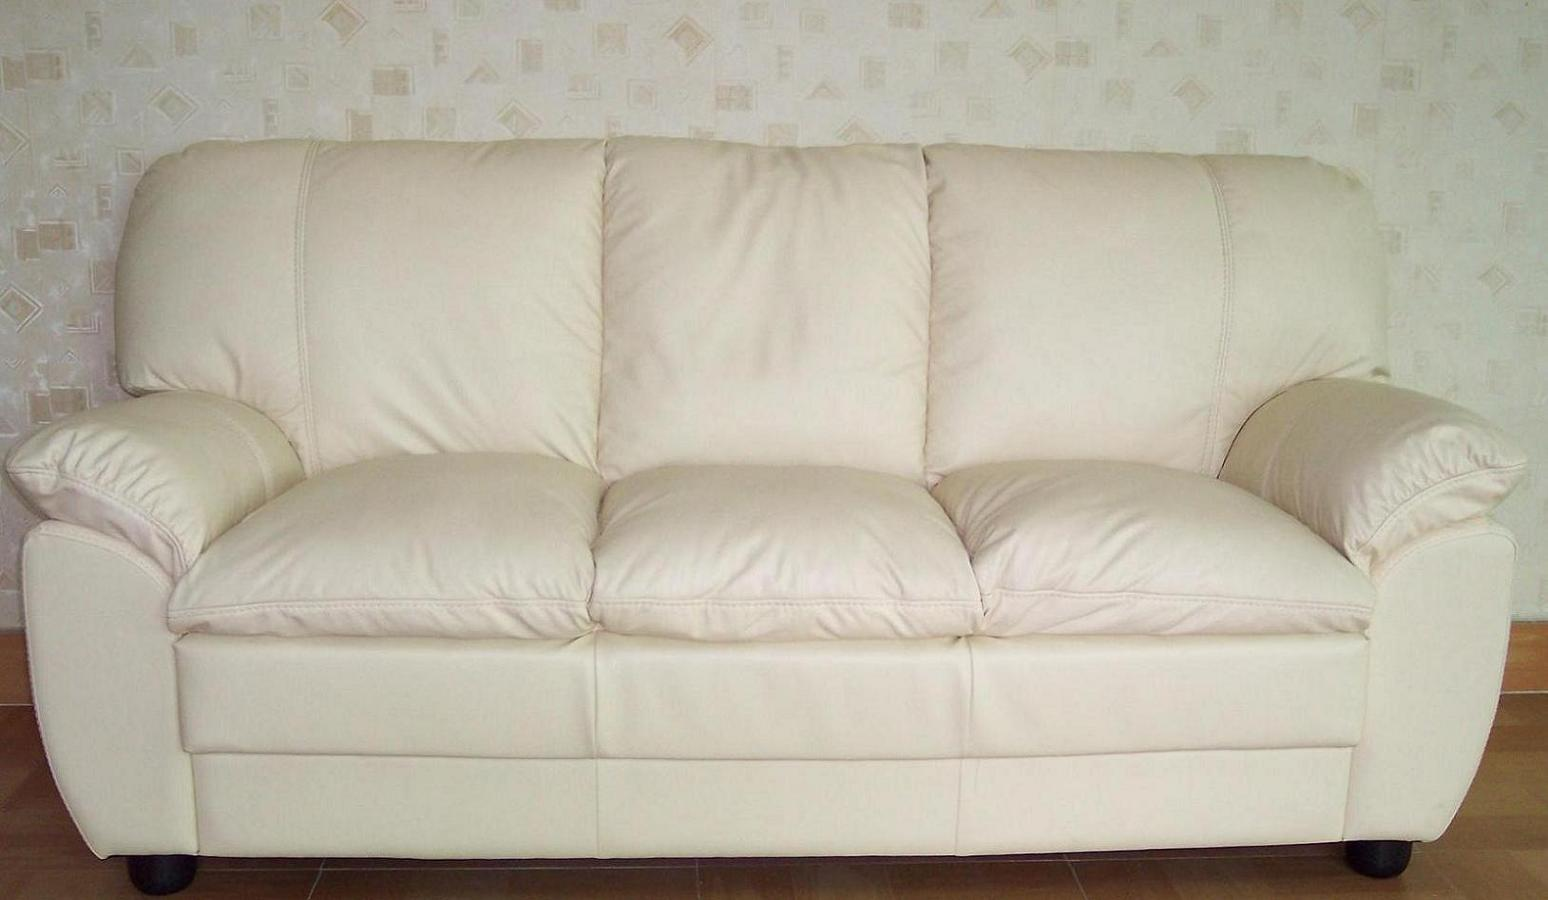 Leather Sofa Set - Buy Leather Sofa Set,Leather Sofa,Sofa Set Product On  Alibaba